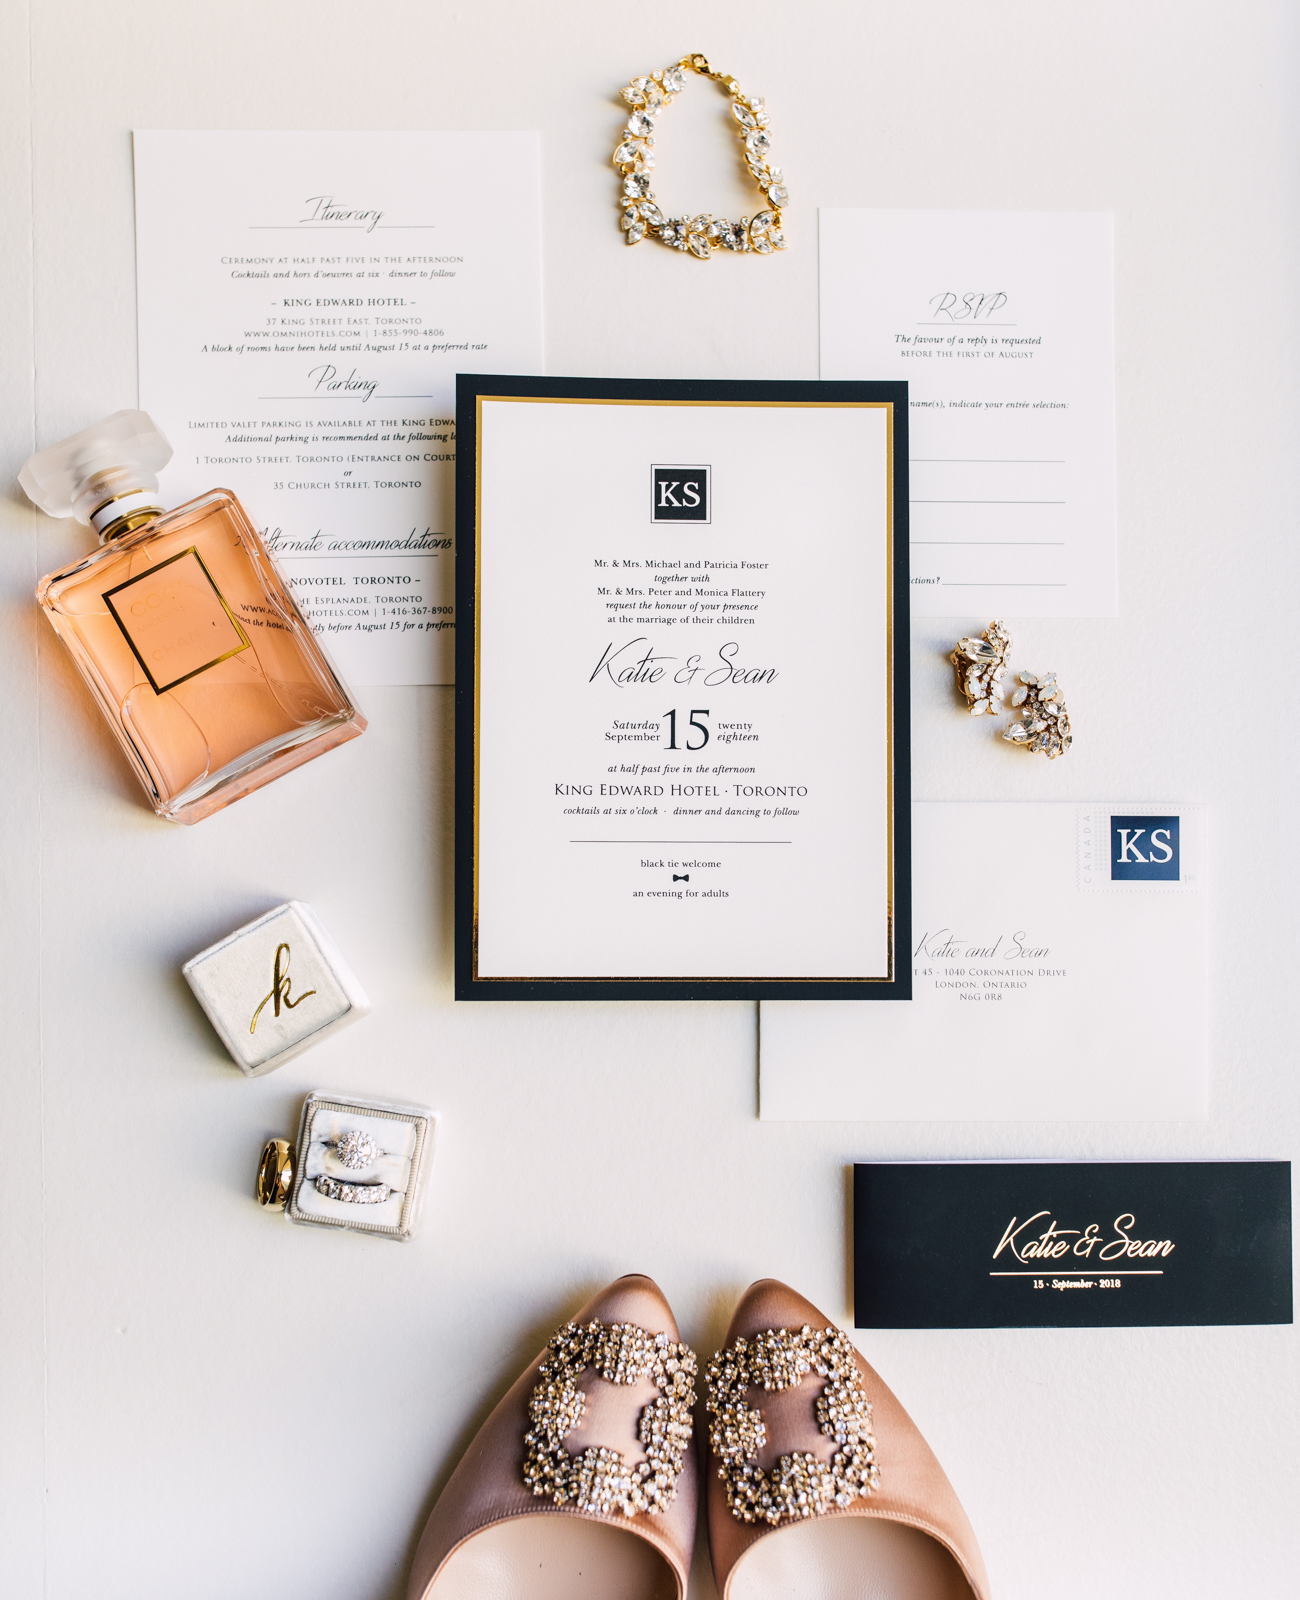 Primarily paper wedding stationery